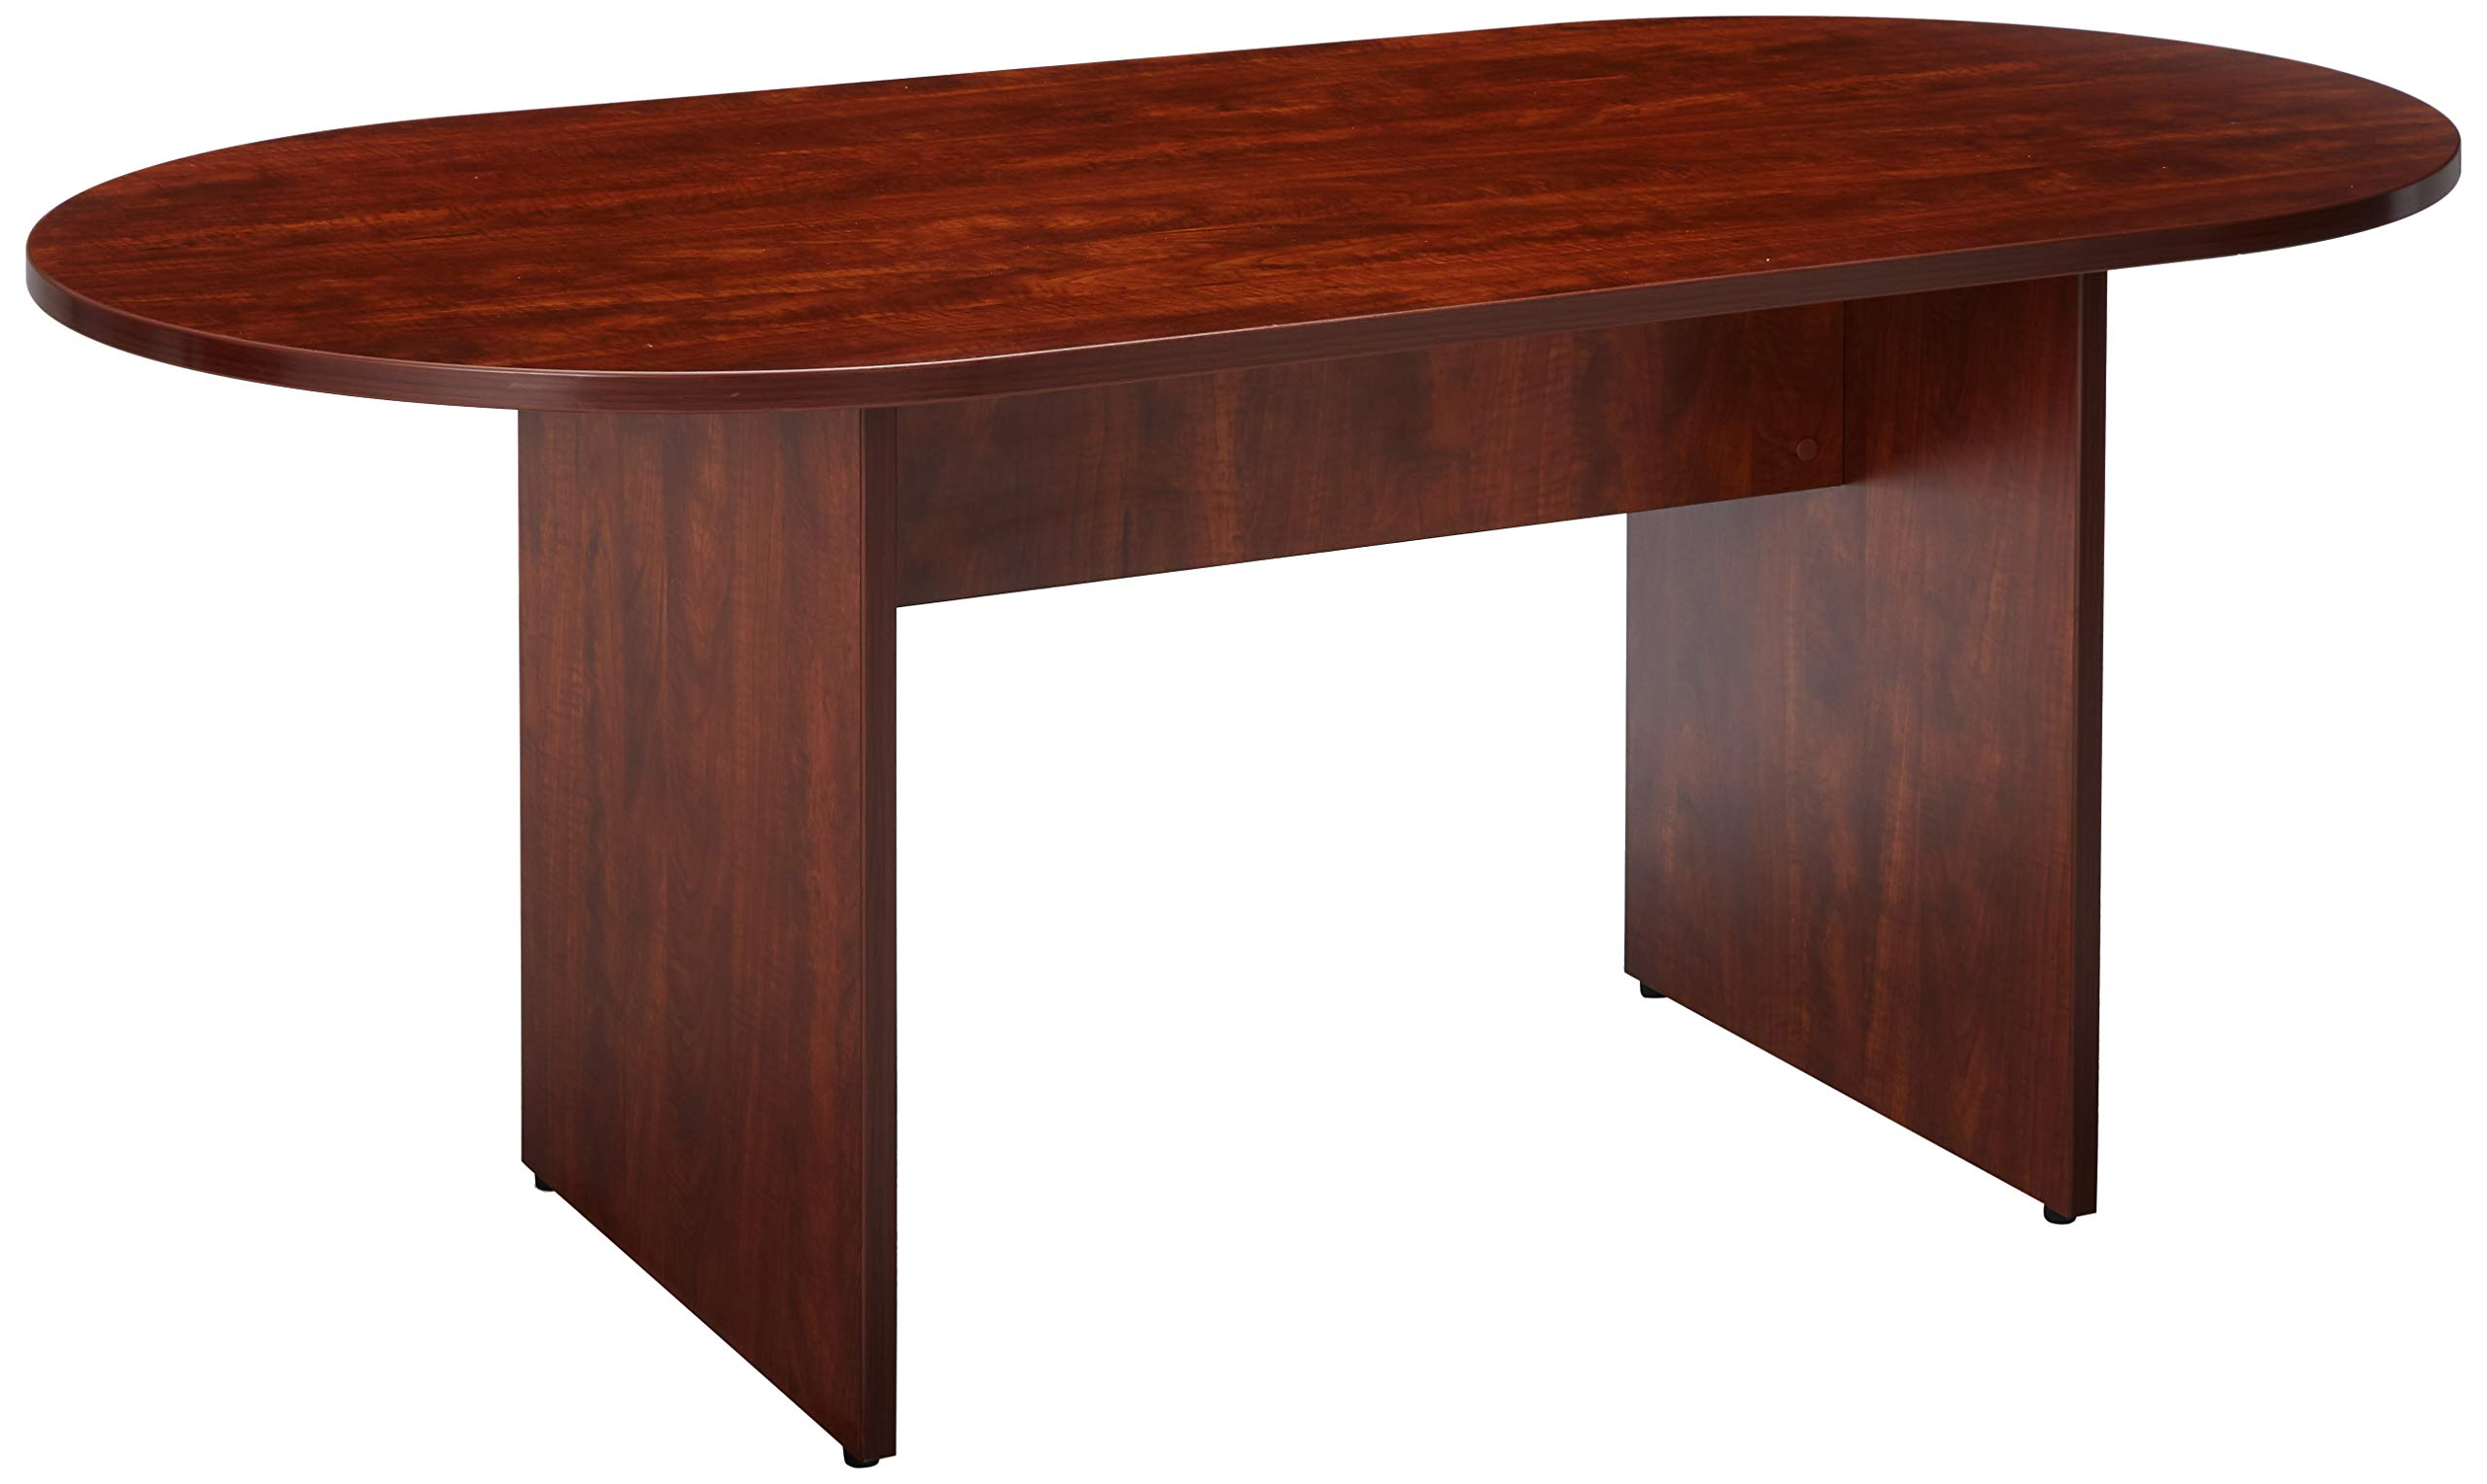 Lorell Oval Conference Table, Top and Base, 72 by 36 by 29-1/2-Inch, Cherry by Lorell